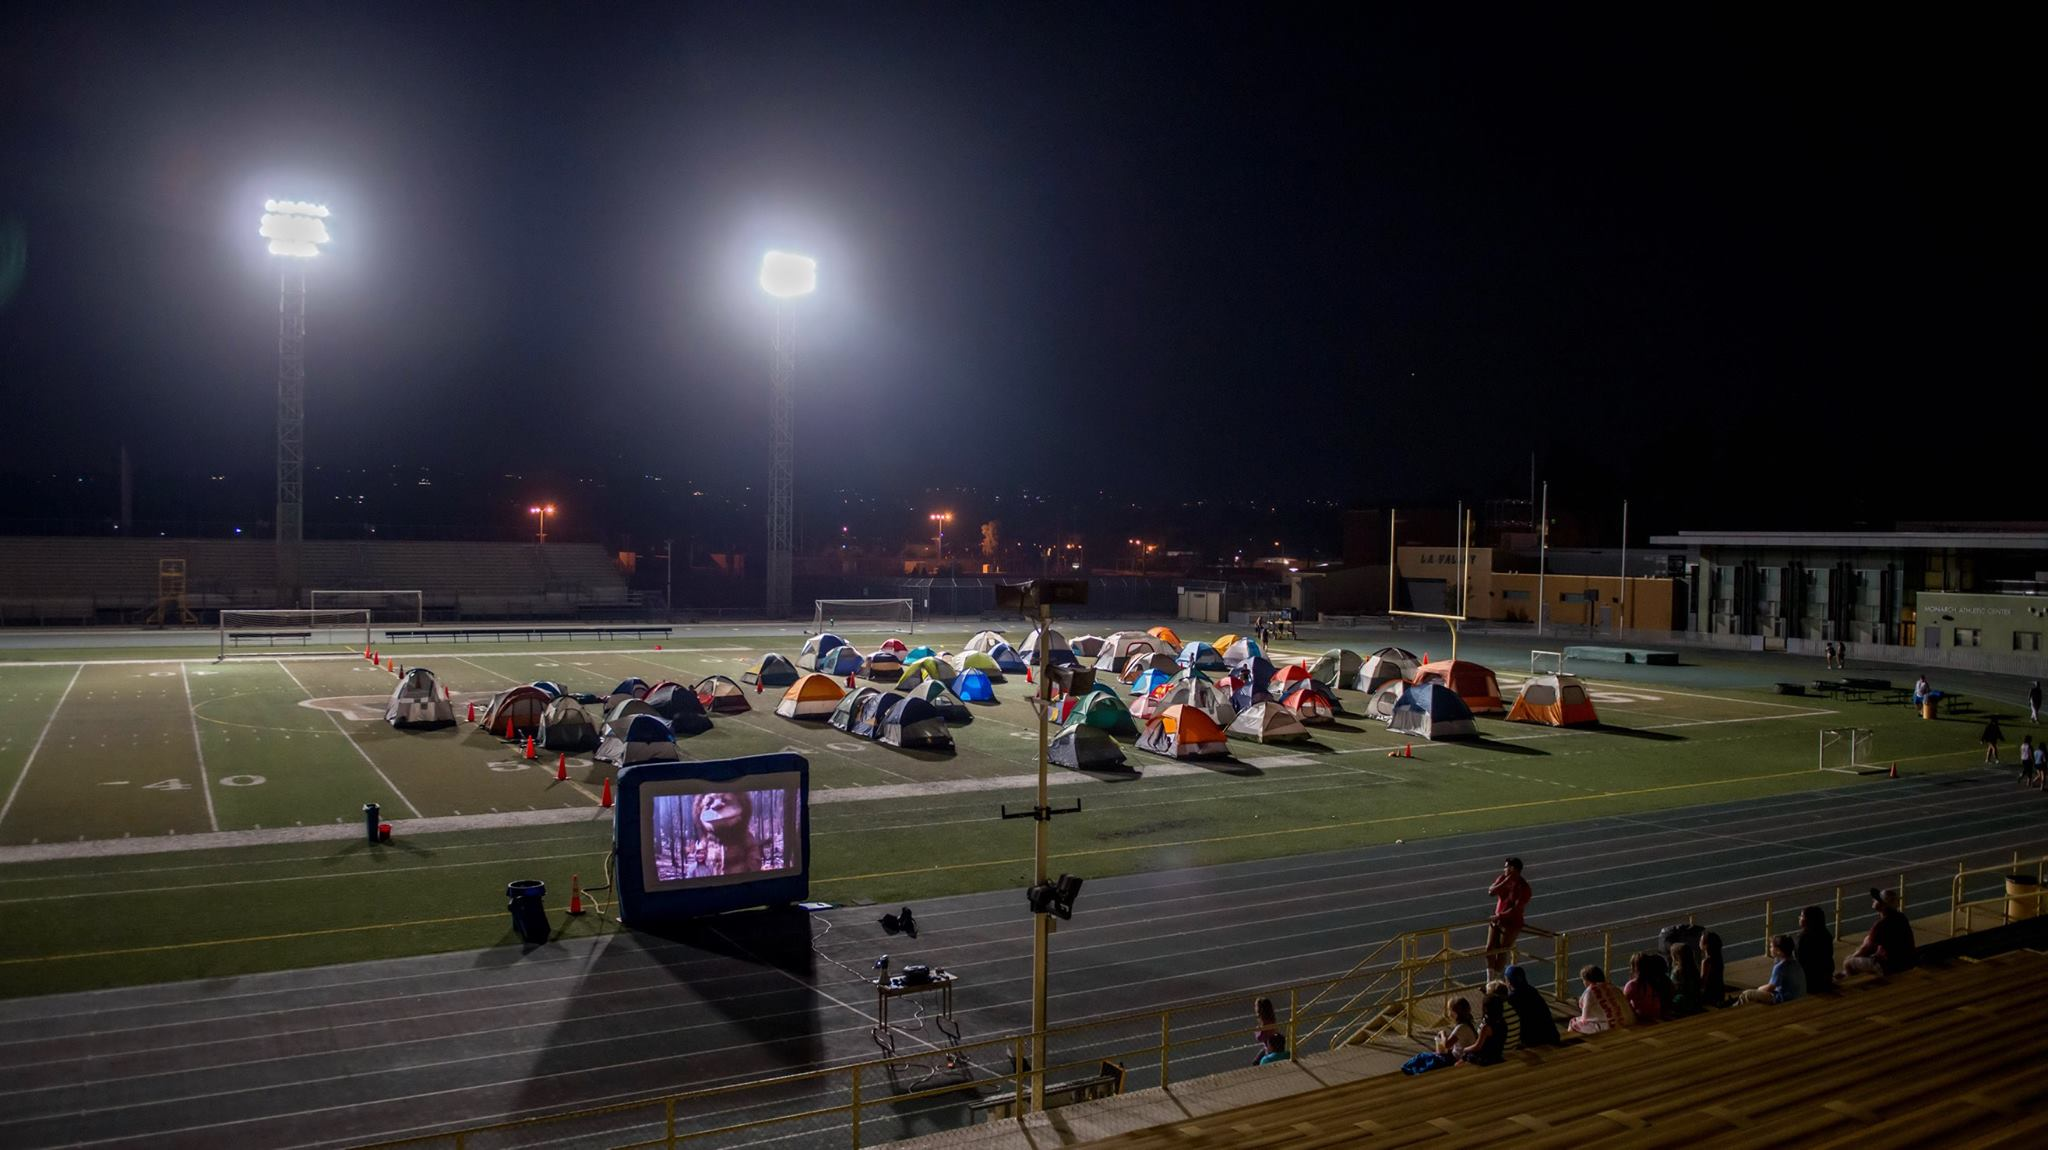 https://monarchcamps.com/wp-content/uploads/2018/01/monarch-camps-sleepover-sleepaway-camp-night-watching-movie-on-inflatable-rental-movie-projector-screen-at-los-angeles-valley-college-football-field.jpg